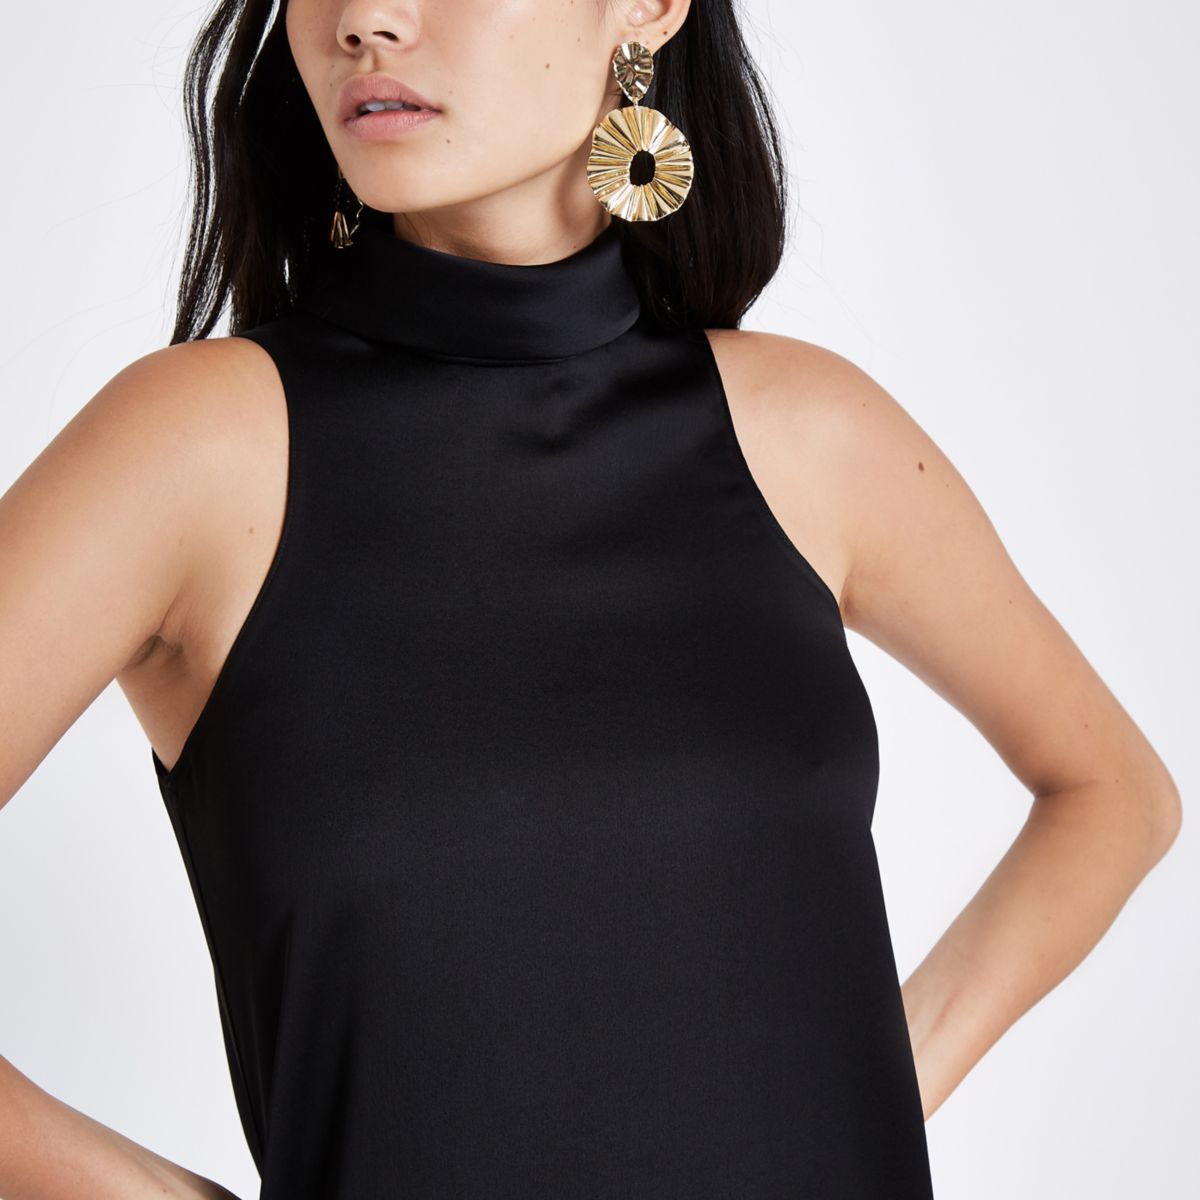 Black satin high neck top